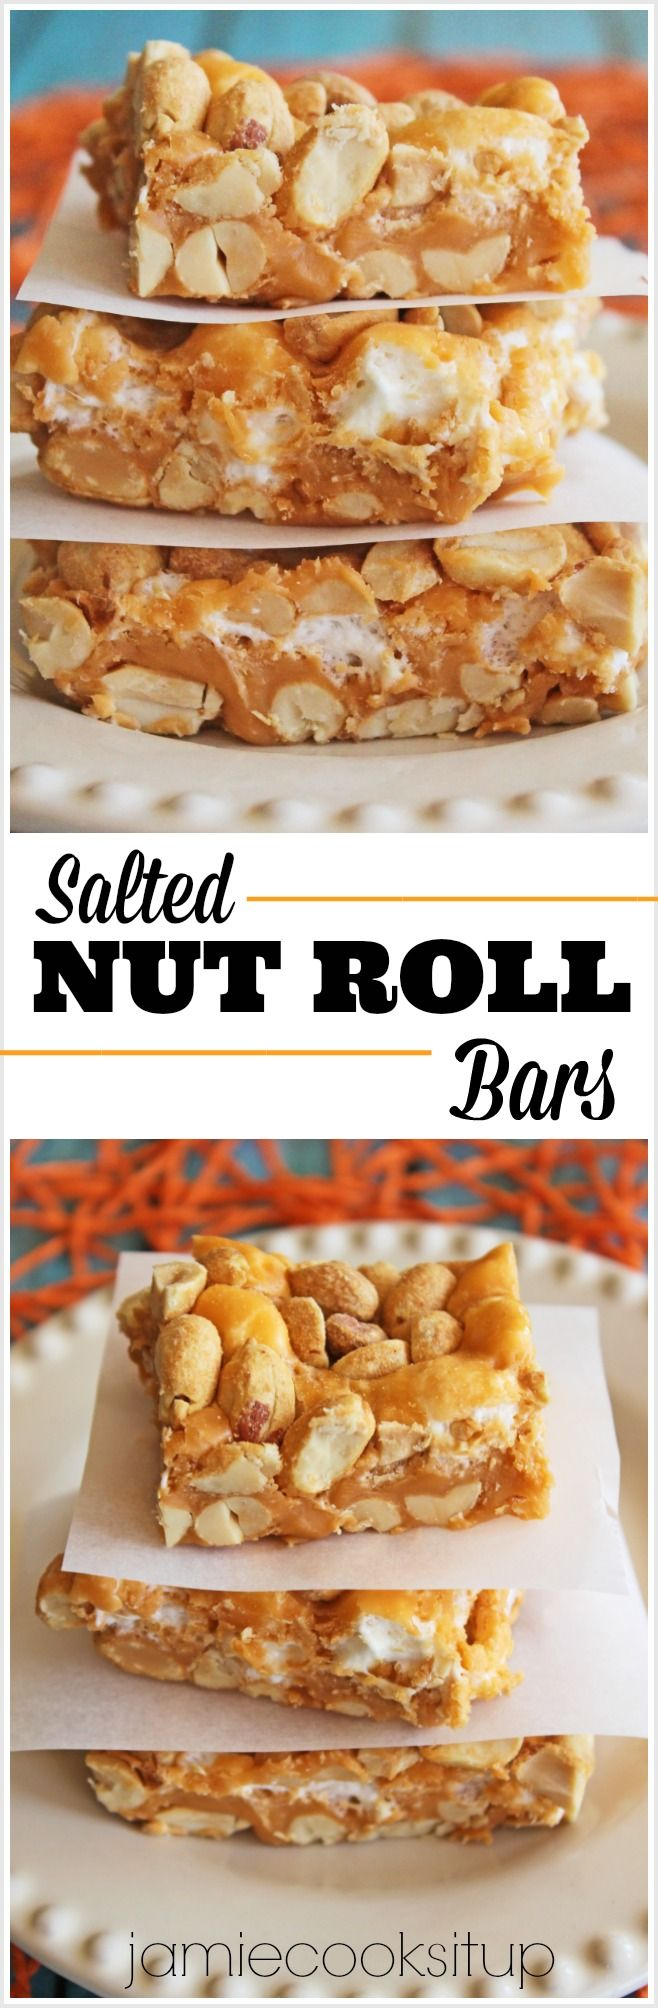 A couple weeks ago MyHandsomeHusband came home from work with a sampling of one of these bars for me. One of his coworkers had brought them along to share with the office, everyone loved them and b…